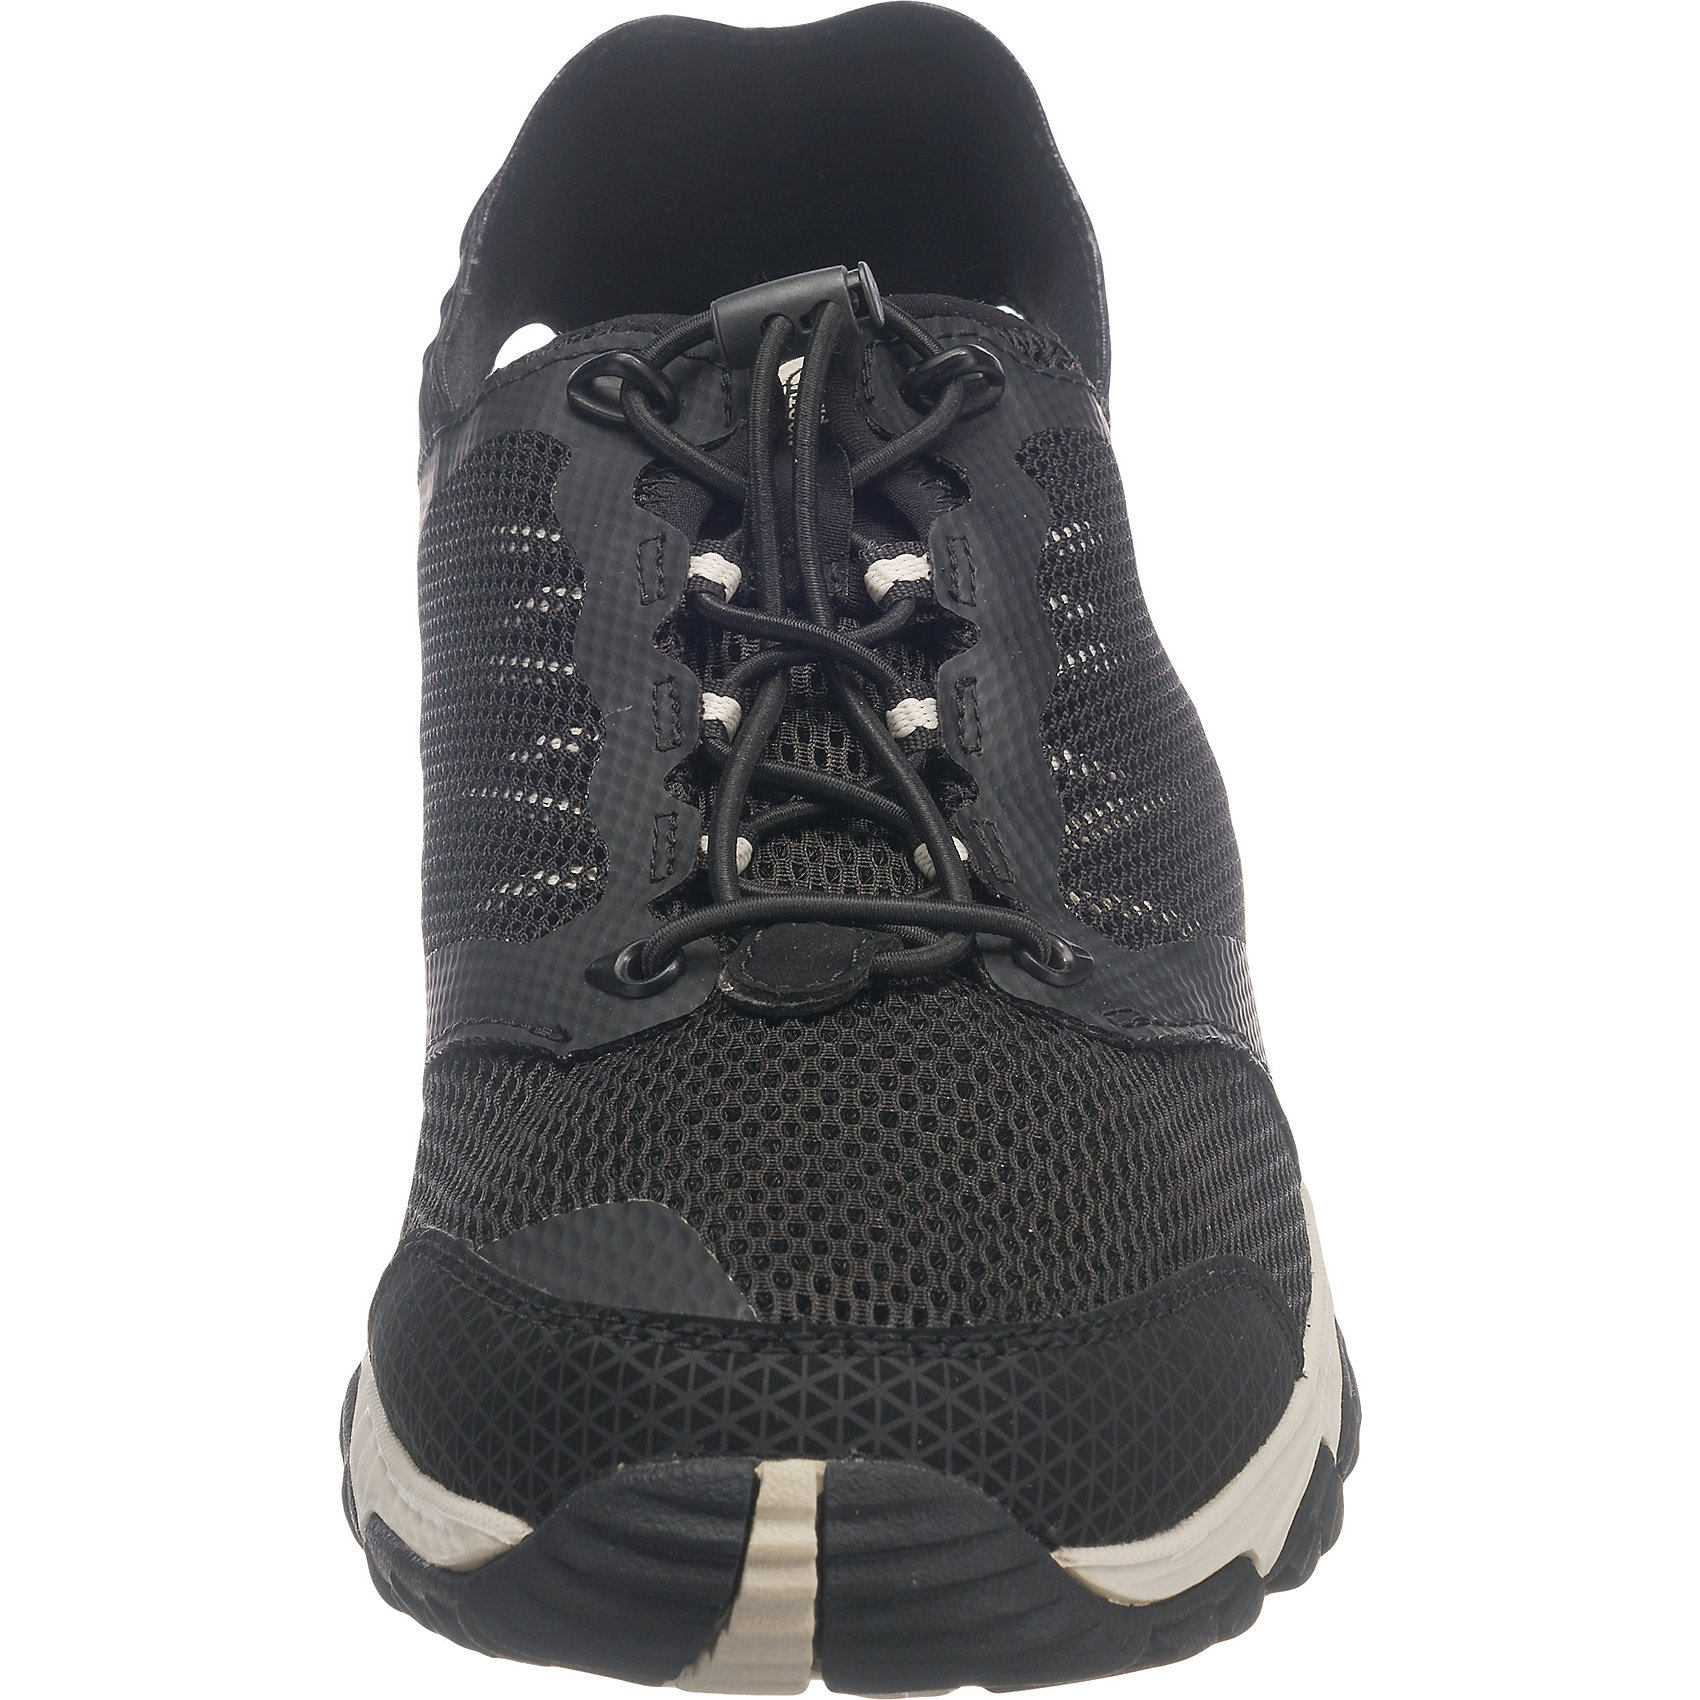 Neu THE Litewave NORTH FACE Litewave THE Amphib II Wassersportschuhe 7566508 für Herren bddc01